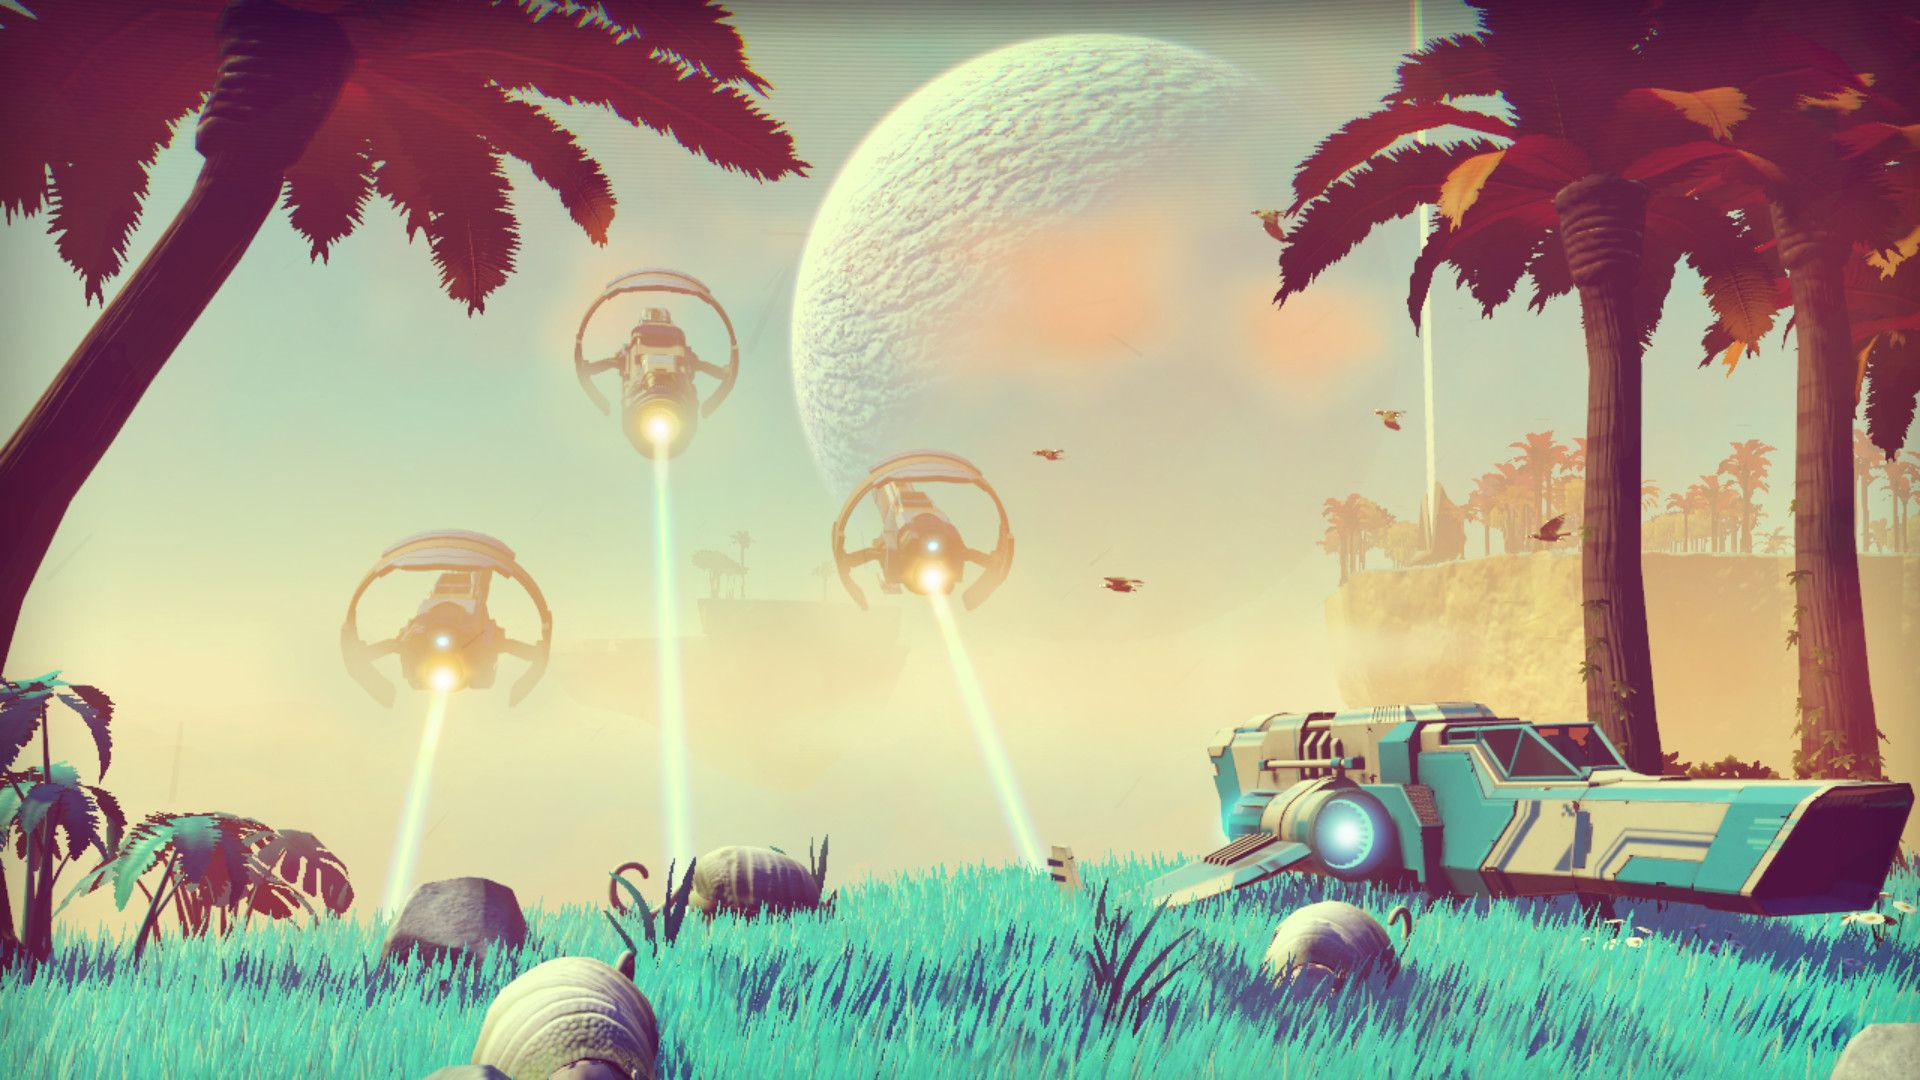 No Man's Sky day 1 patch, pets and…base building!?